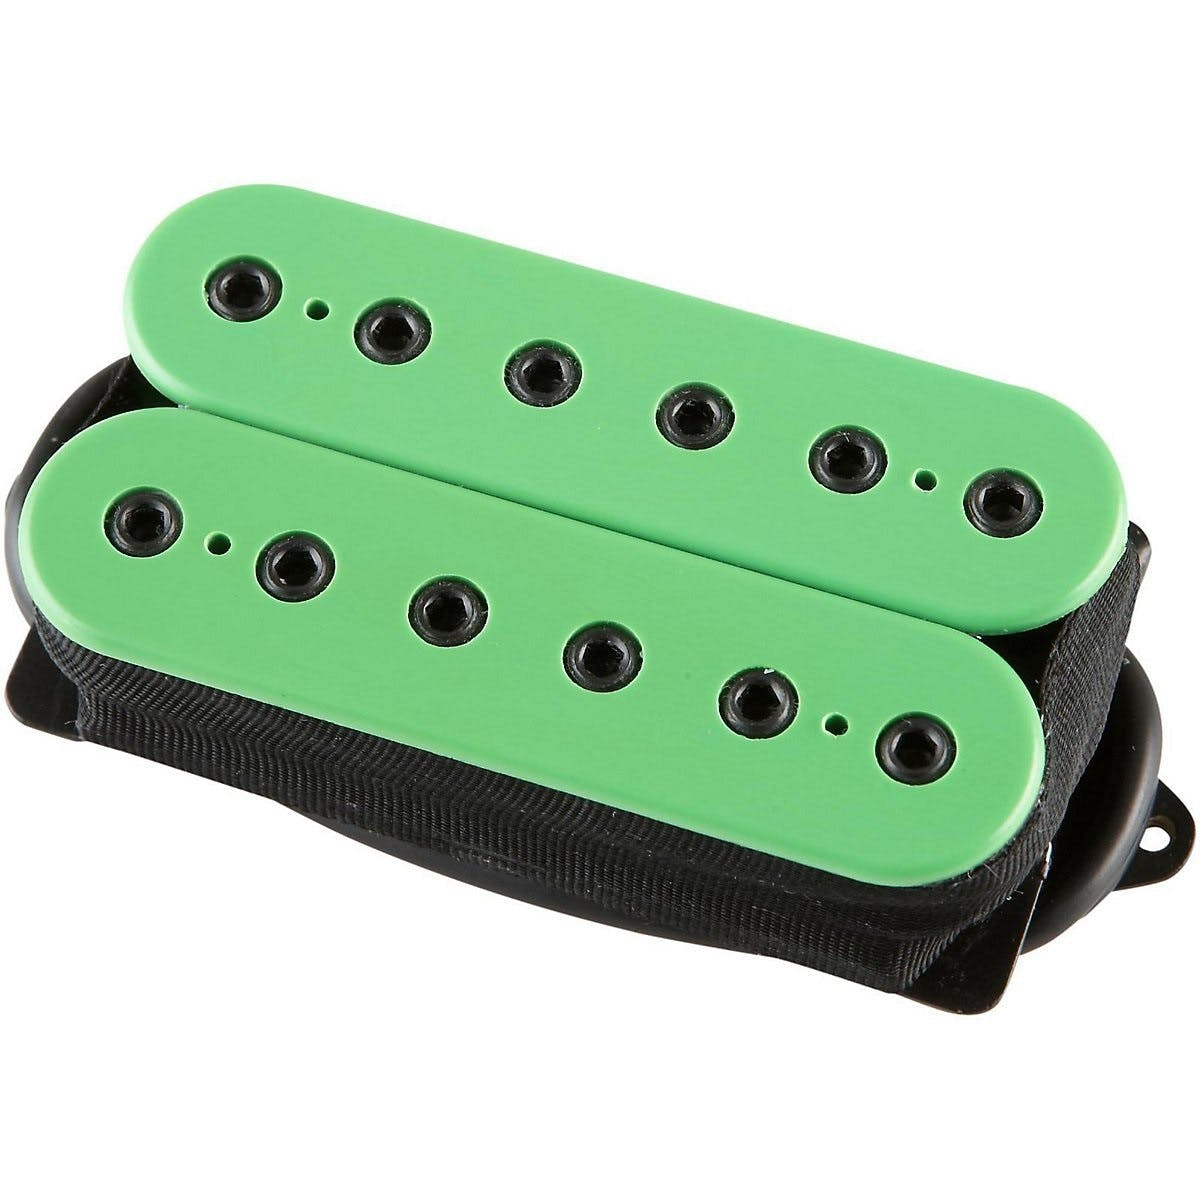 Guitar Pickups Your Ultimate Guide From Andertons Music Co Fender N3 Pick Up Telecaster Wiring Diagram Dimarzio Evolution Bridge F Spaced Pickup In Green